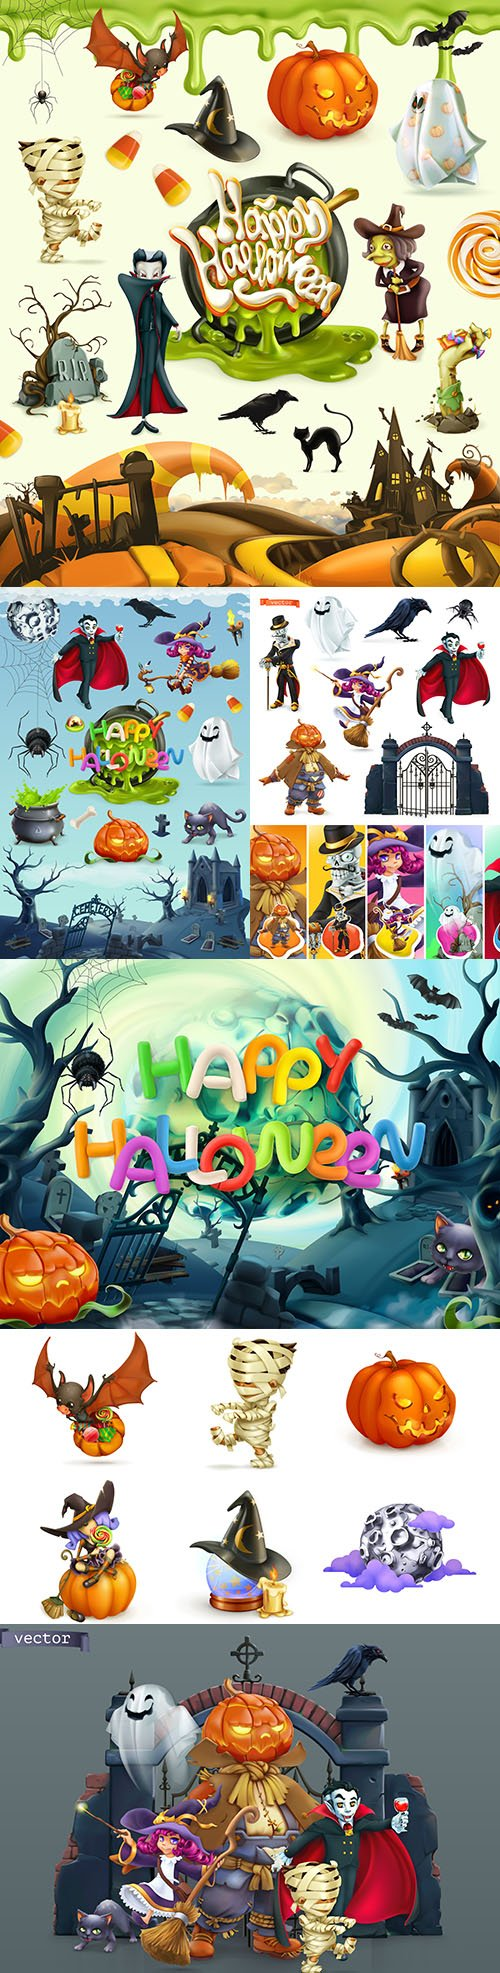 Happy Halloween and cartoon heroes 3rd realistic illustrations